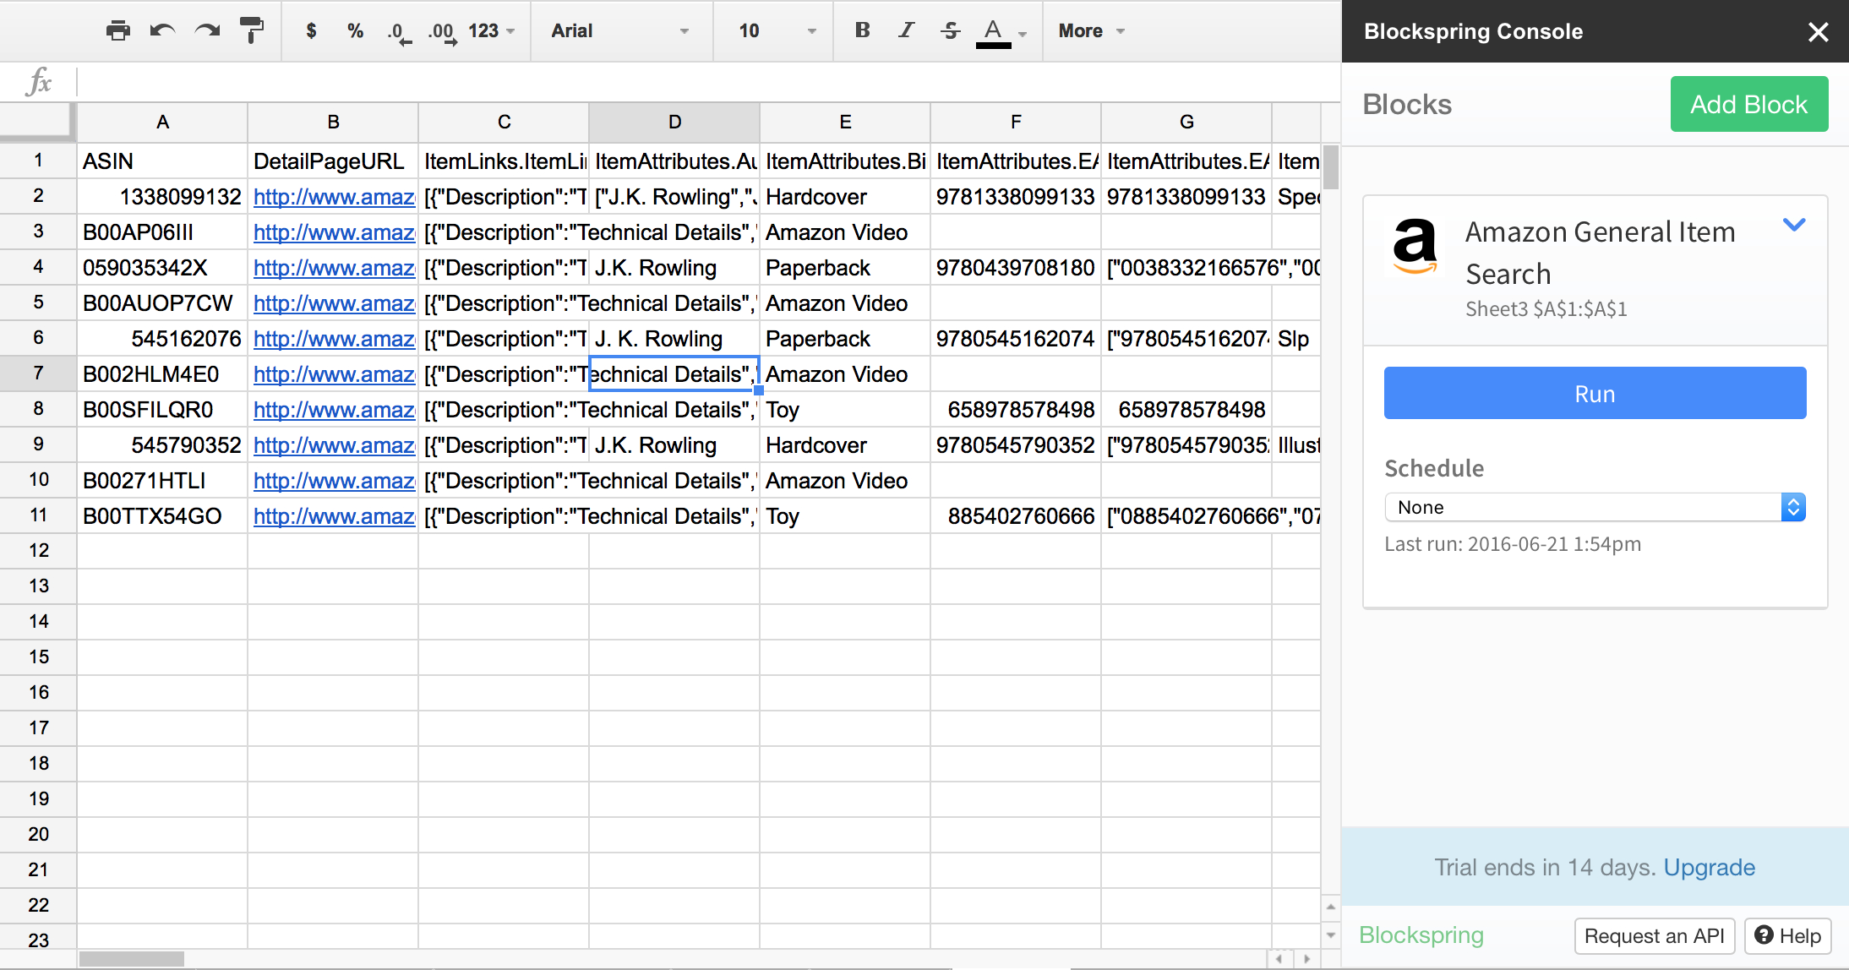 Google Drive Spreadsheet Templates For 50 Google Sheets Addons To Supercharge Your Spreadsheets  The